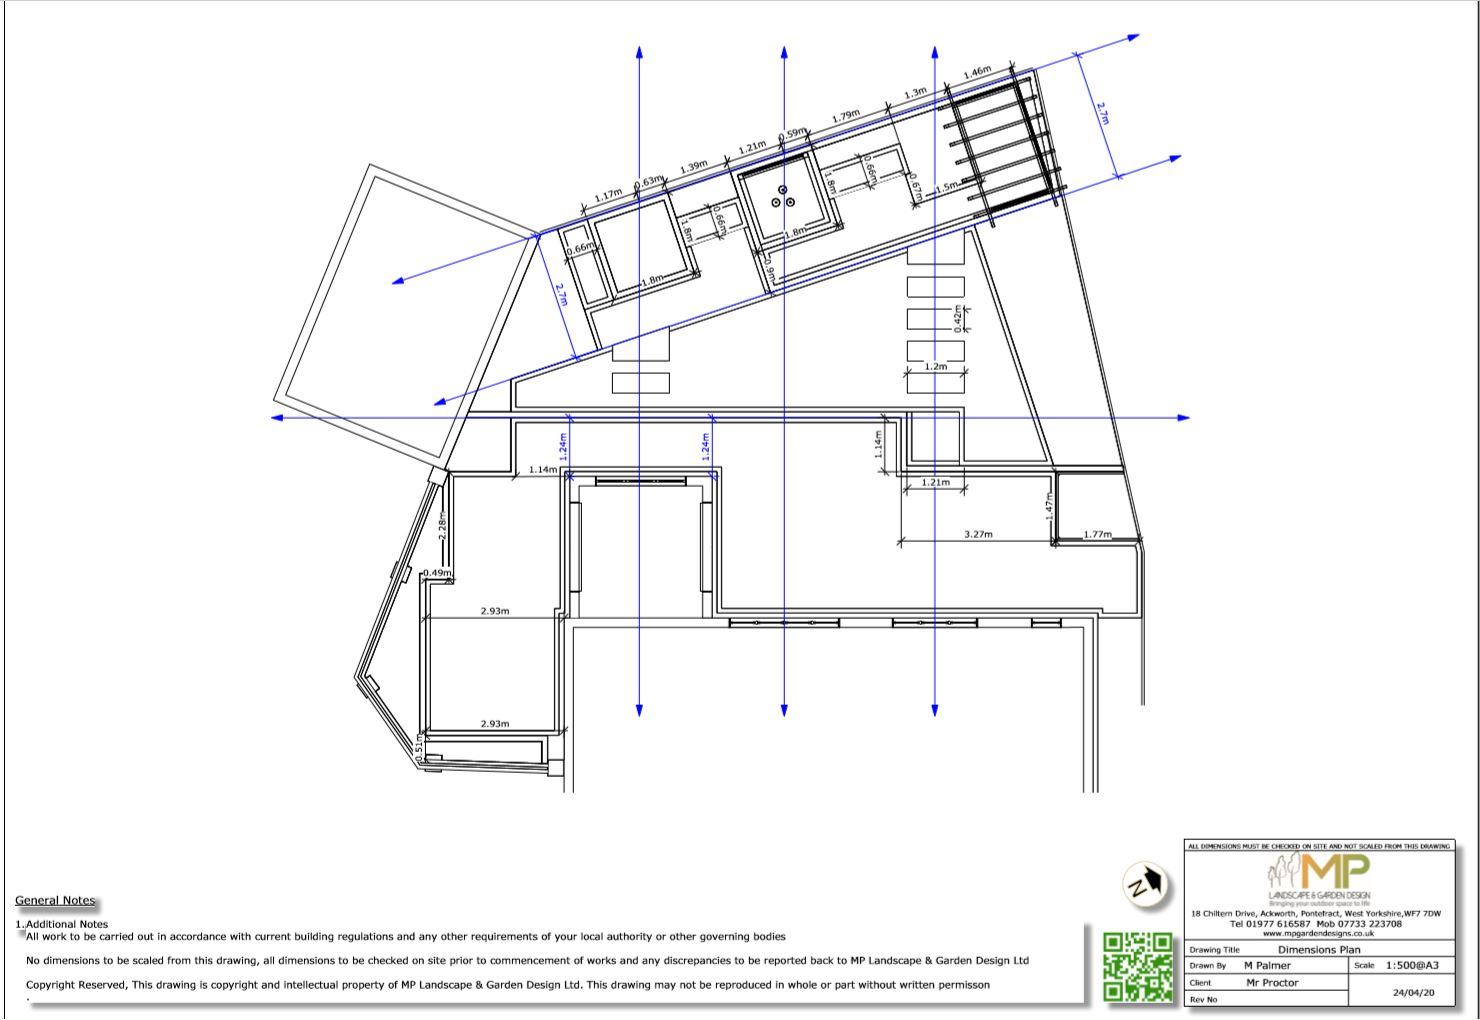 5, Dimensions for a rear garden South Kirkby